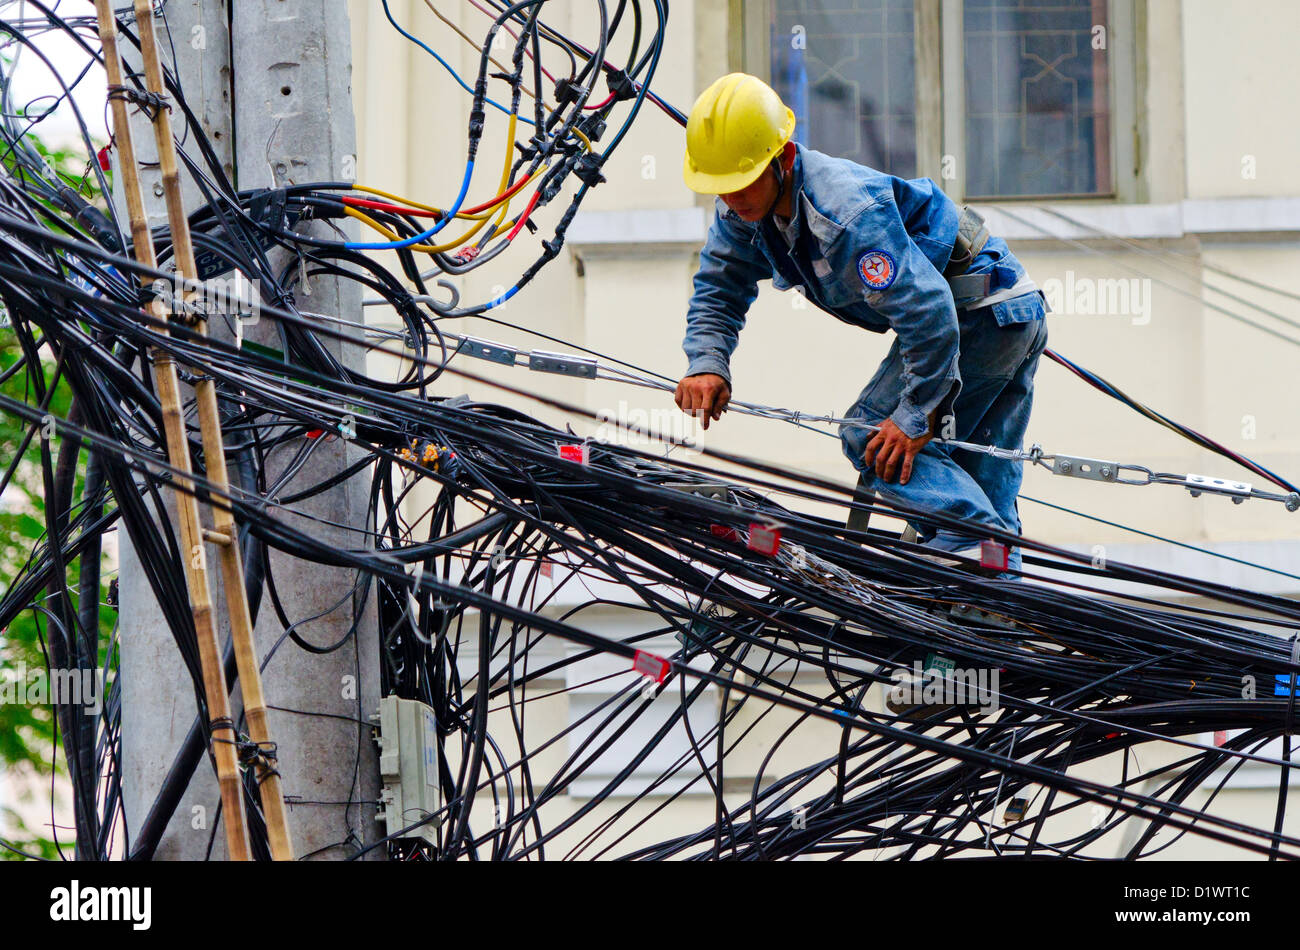 electrical wiring mess stock photos electrical wiring mess stock rh alamy com Residential Electrical Wiring Diagrams Dangerous Electrical Wiring